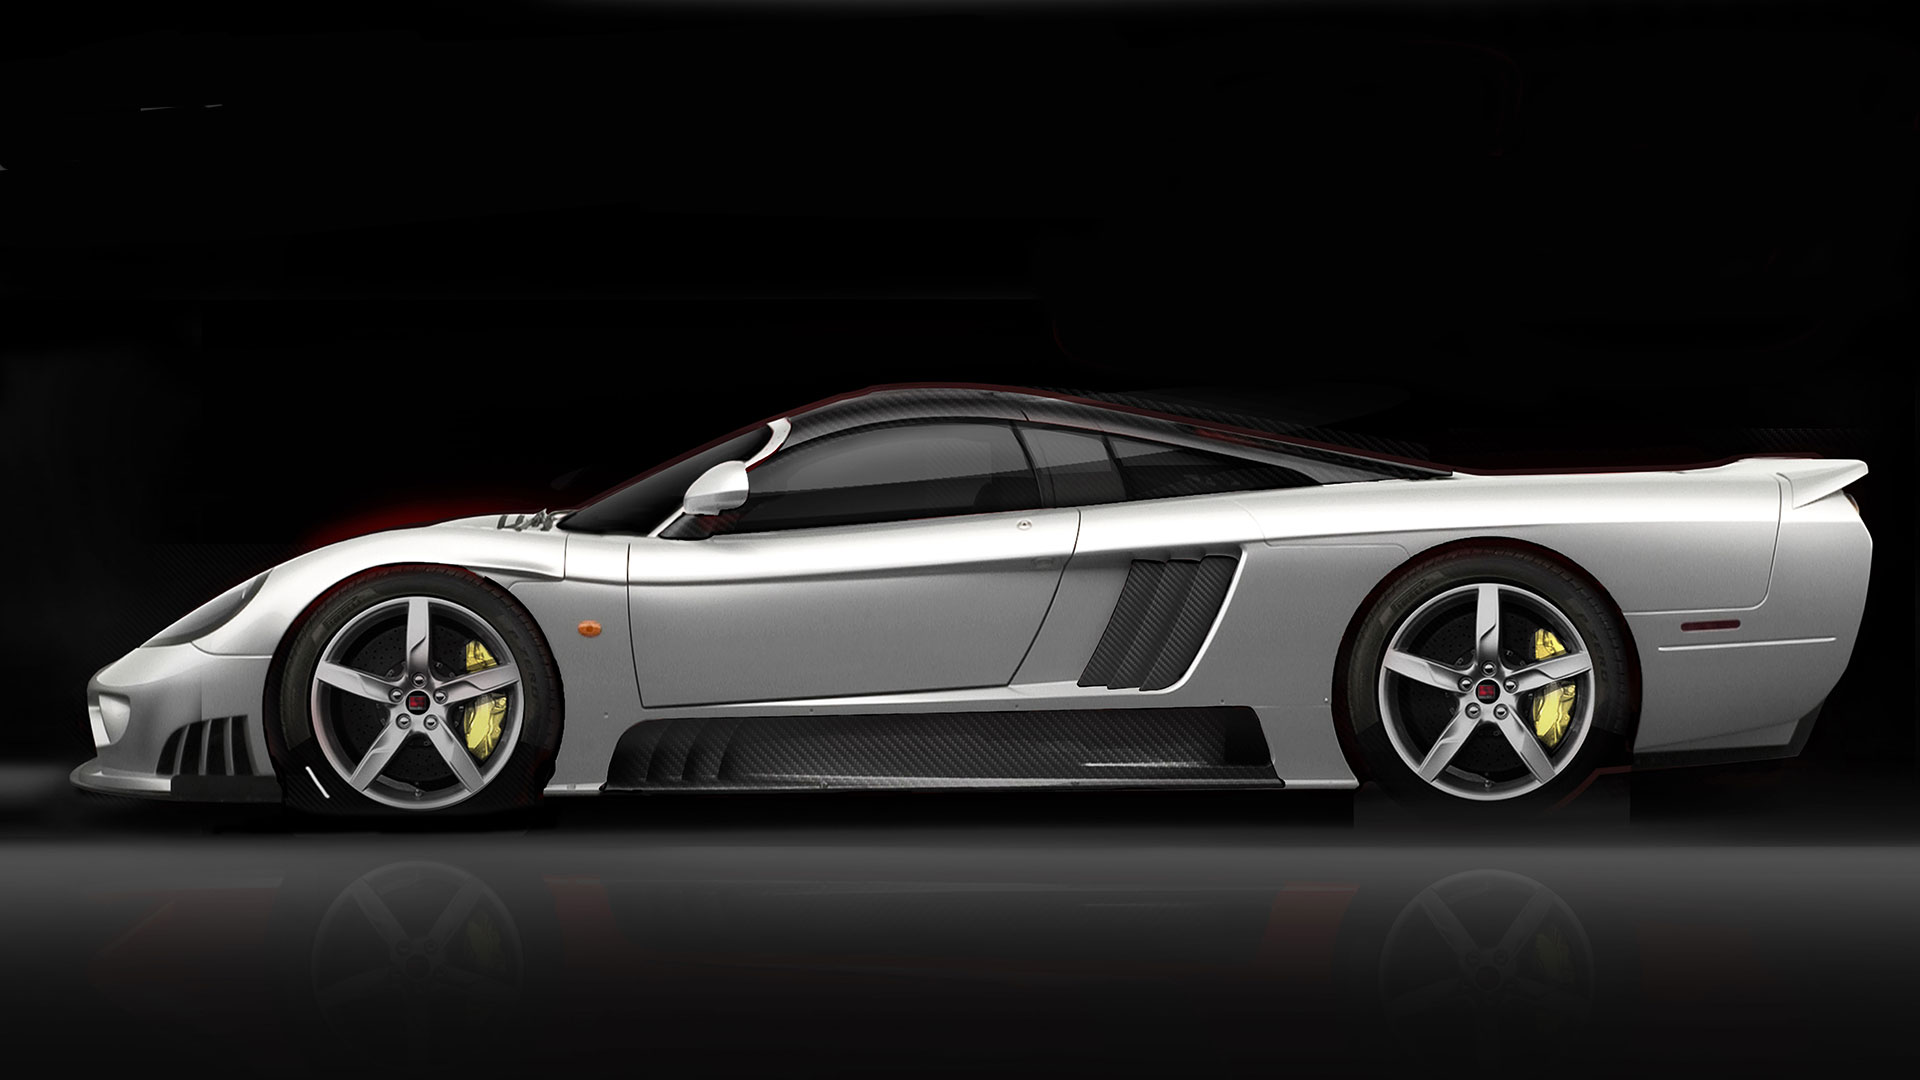 Saleen S7 For Sale >> The Saleen S7 Supercar Returns, Now Packing 1,000 Horsepower - The Drive